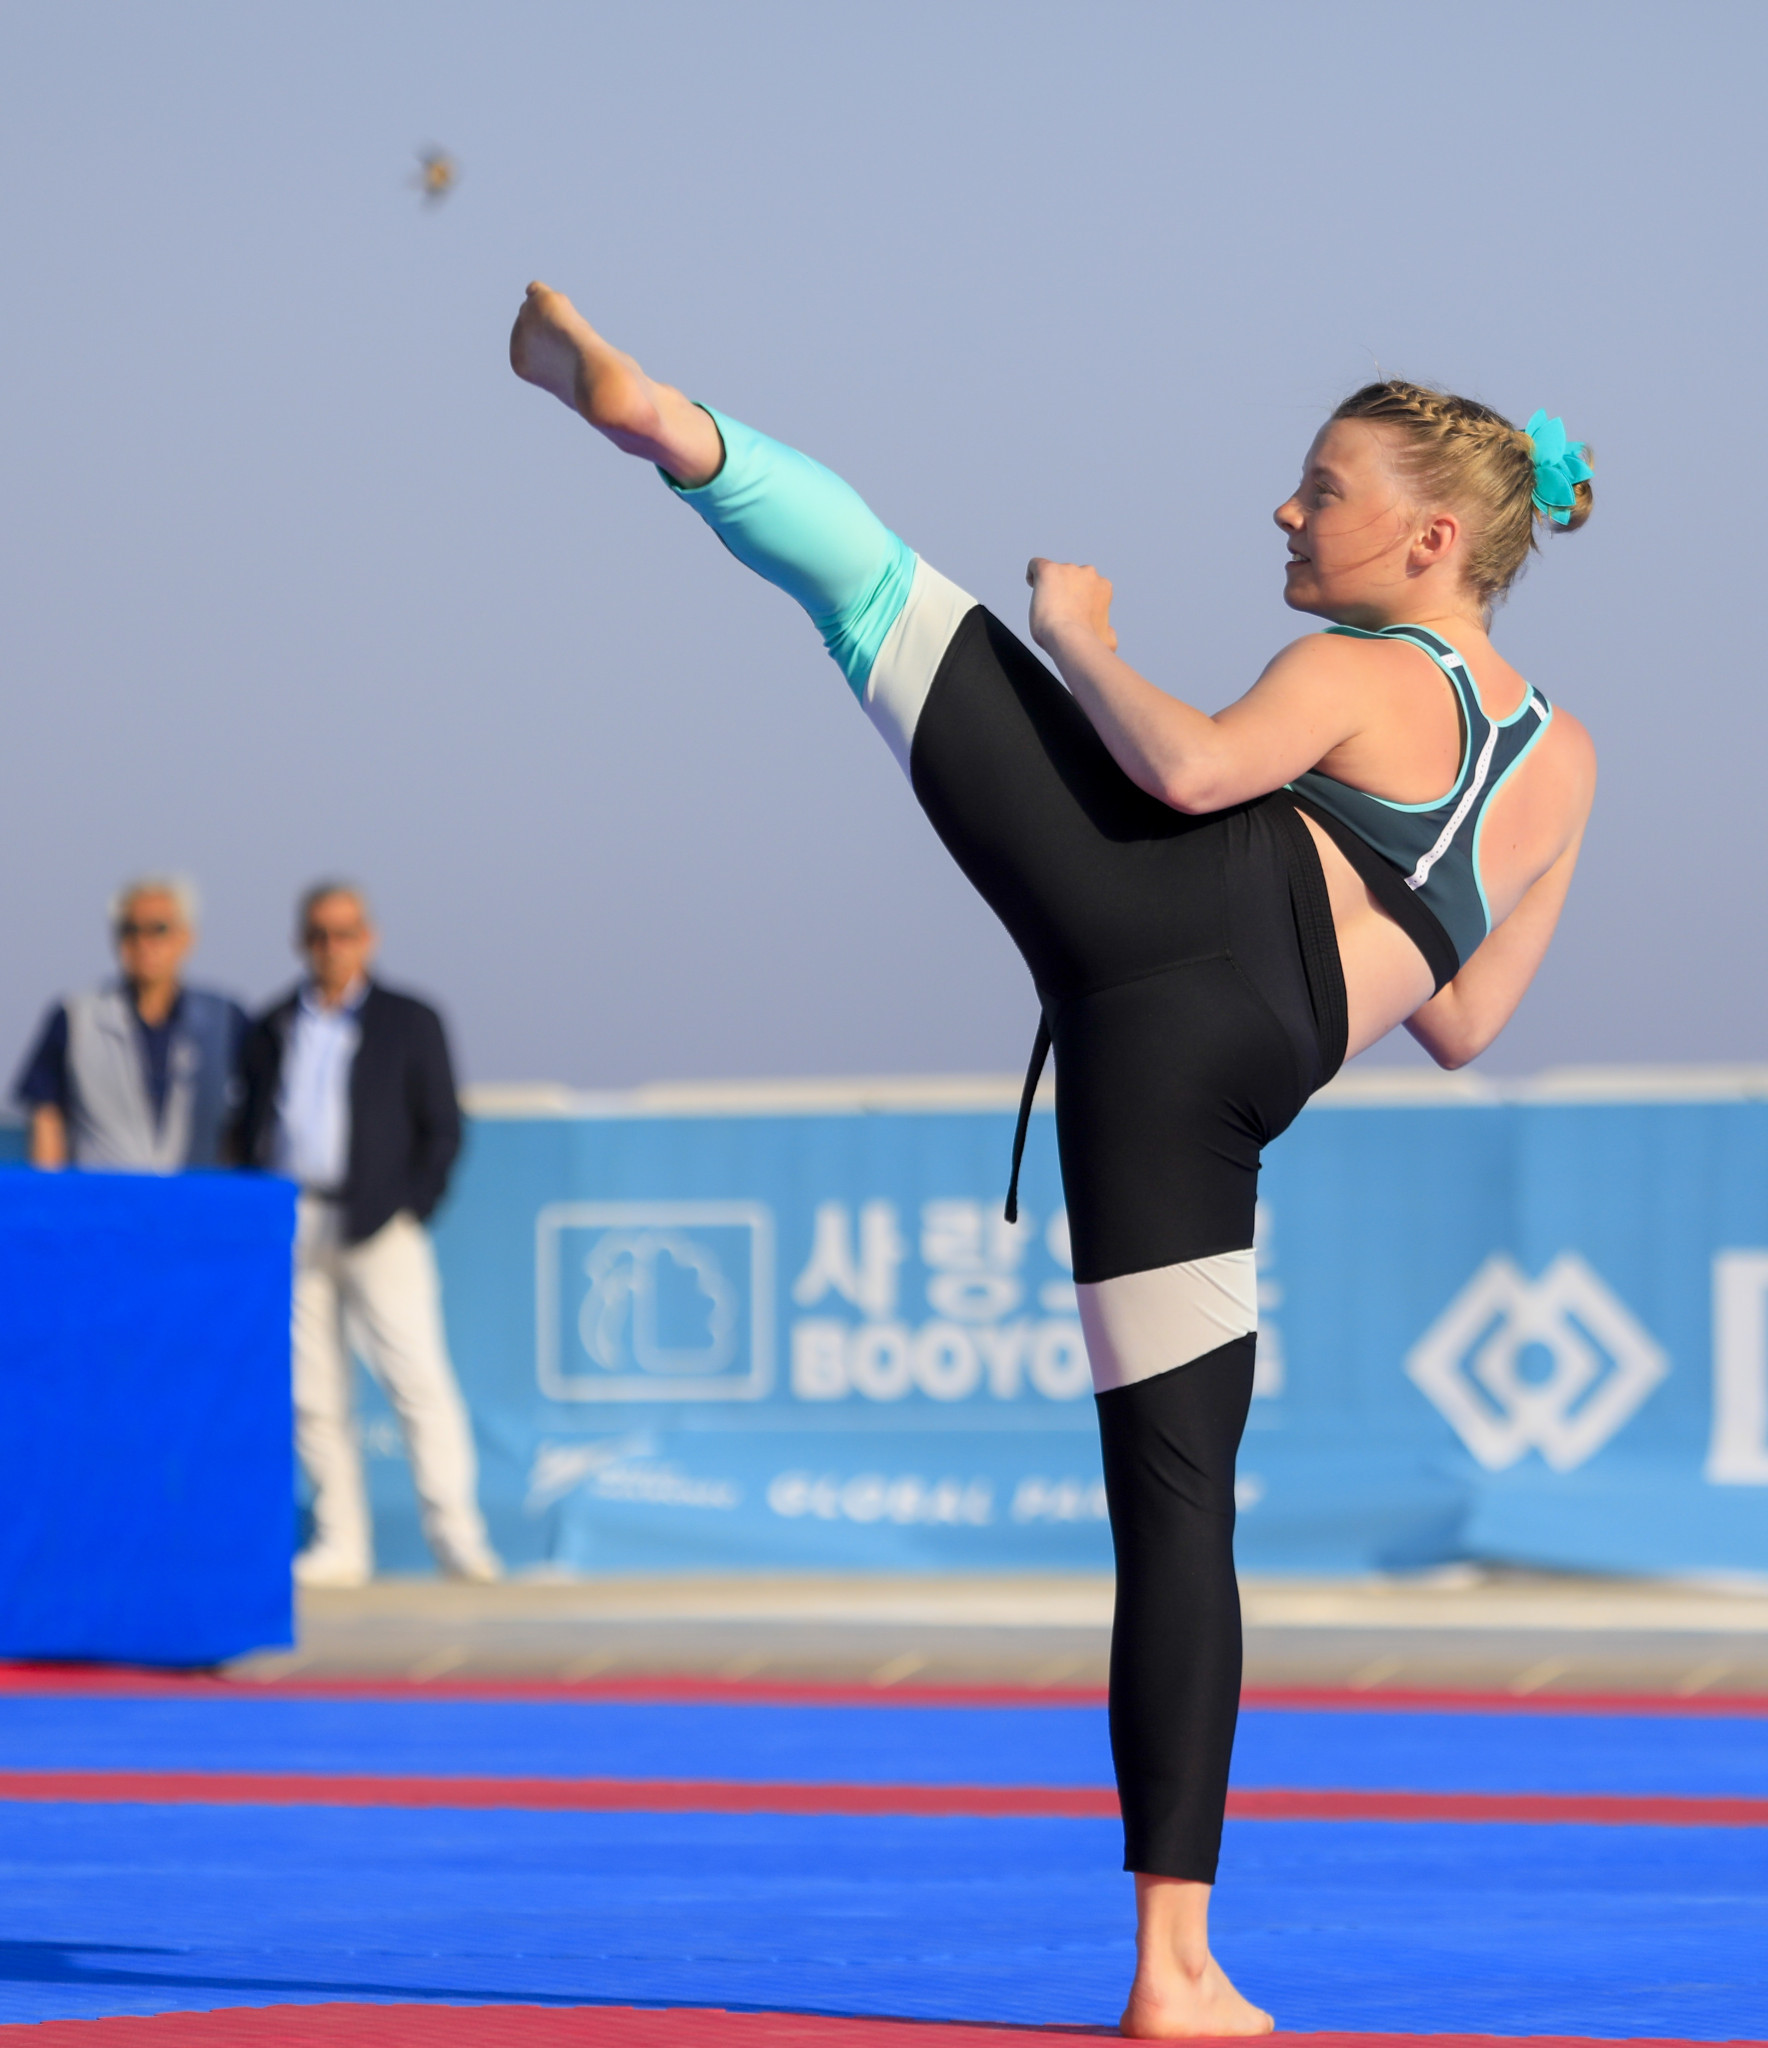 Russia's Anastasia Sumenkova claimed the silver medal in the women's individual dynamic kicks event in Rhodes ©World Taekwondo